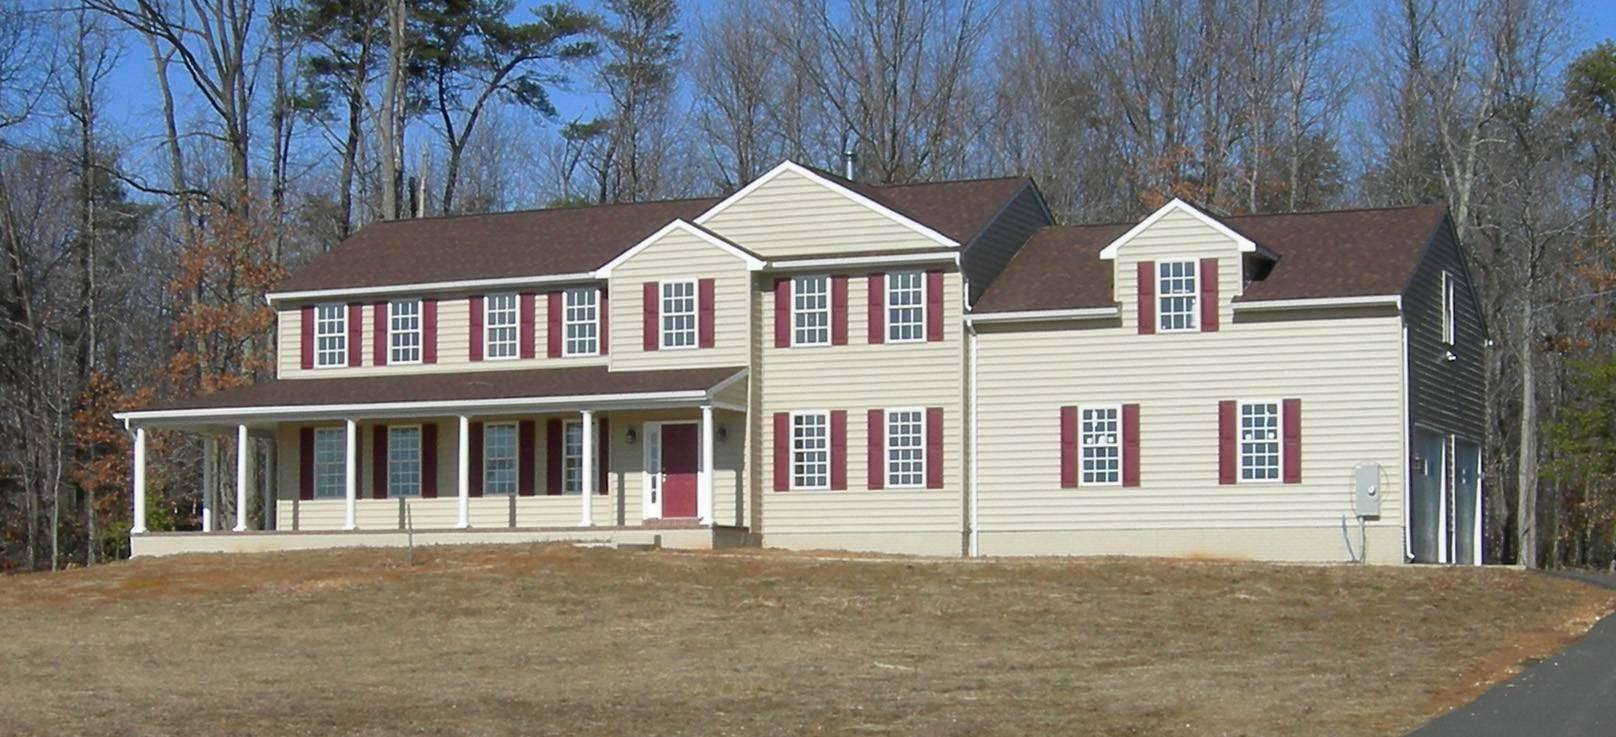 House for sale newburg maryland united states custom for Modern homes for sale in maryland